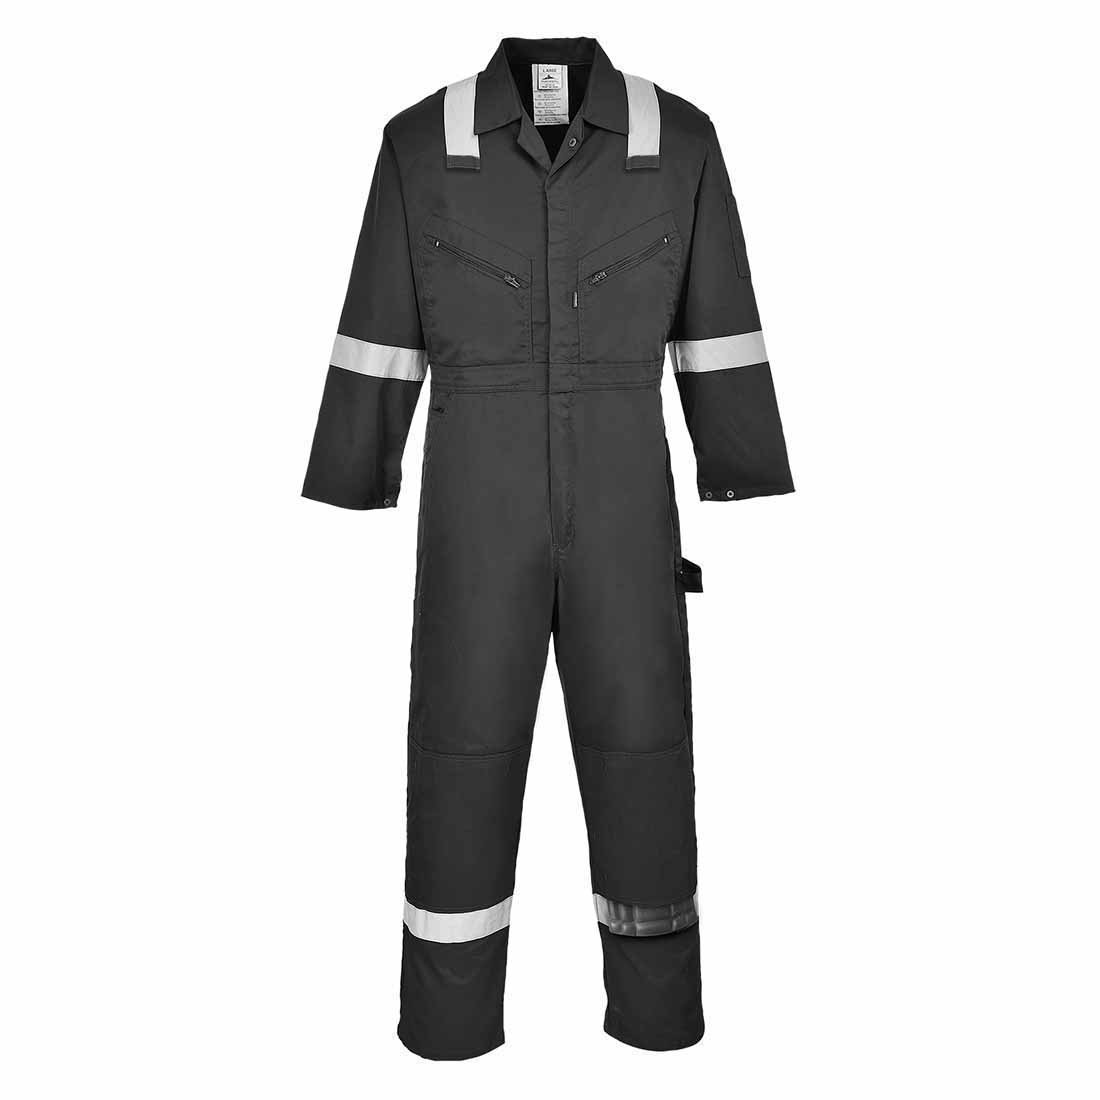 sUw - Iona Hi-Vis Safety Workwear Coverall Boilersuit Navy Small F813NARS